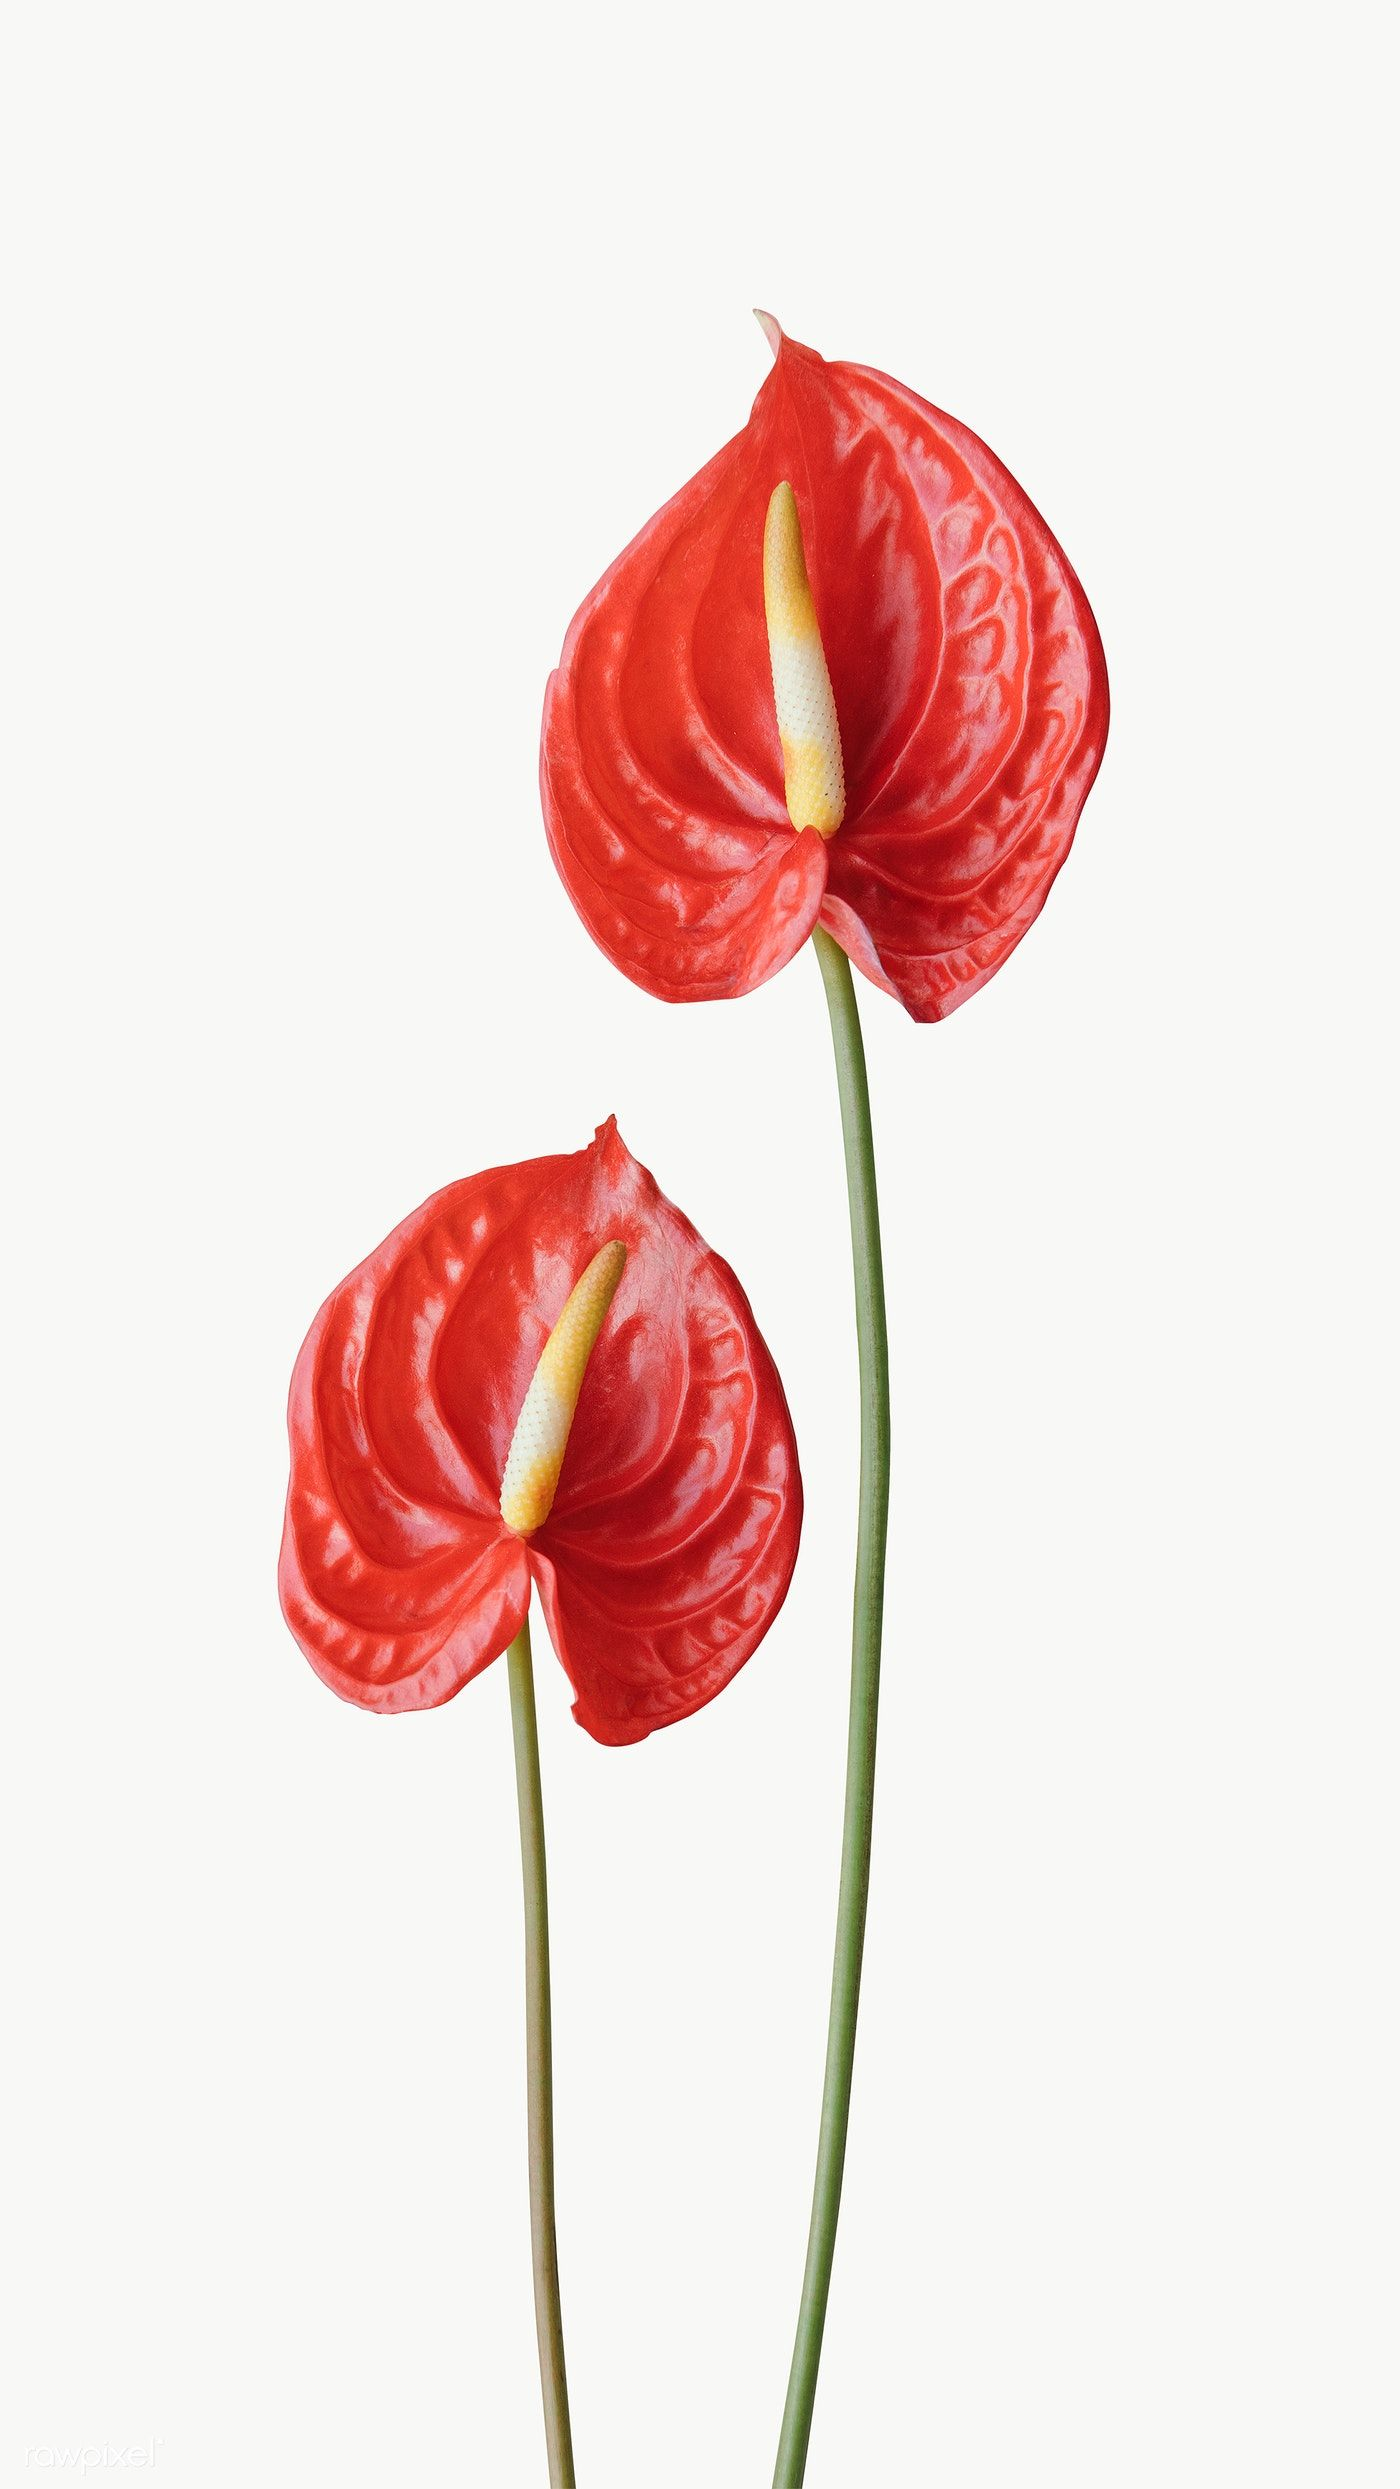 Red Anthurium Transparent Png Free Image By Rawpixel Com Nam In 2020 Anthurium Flower Flowers Photography Anthurium